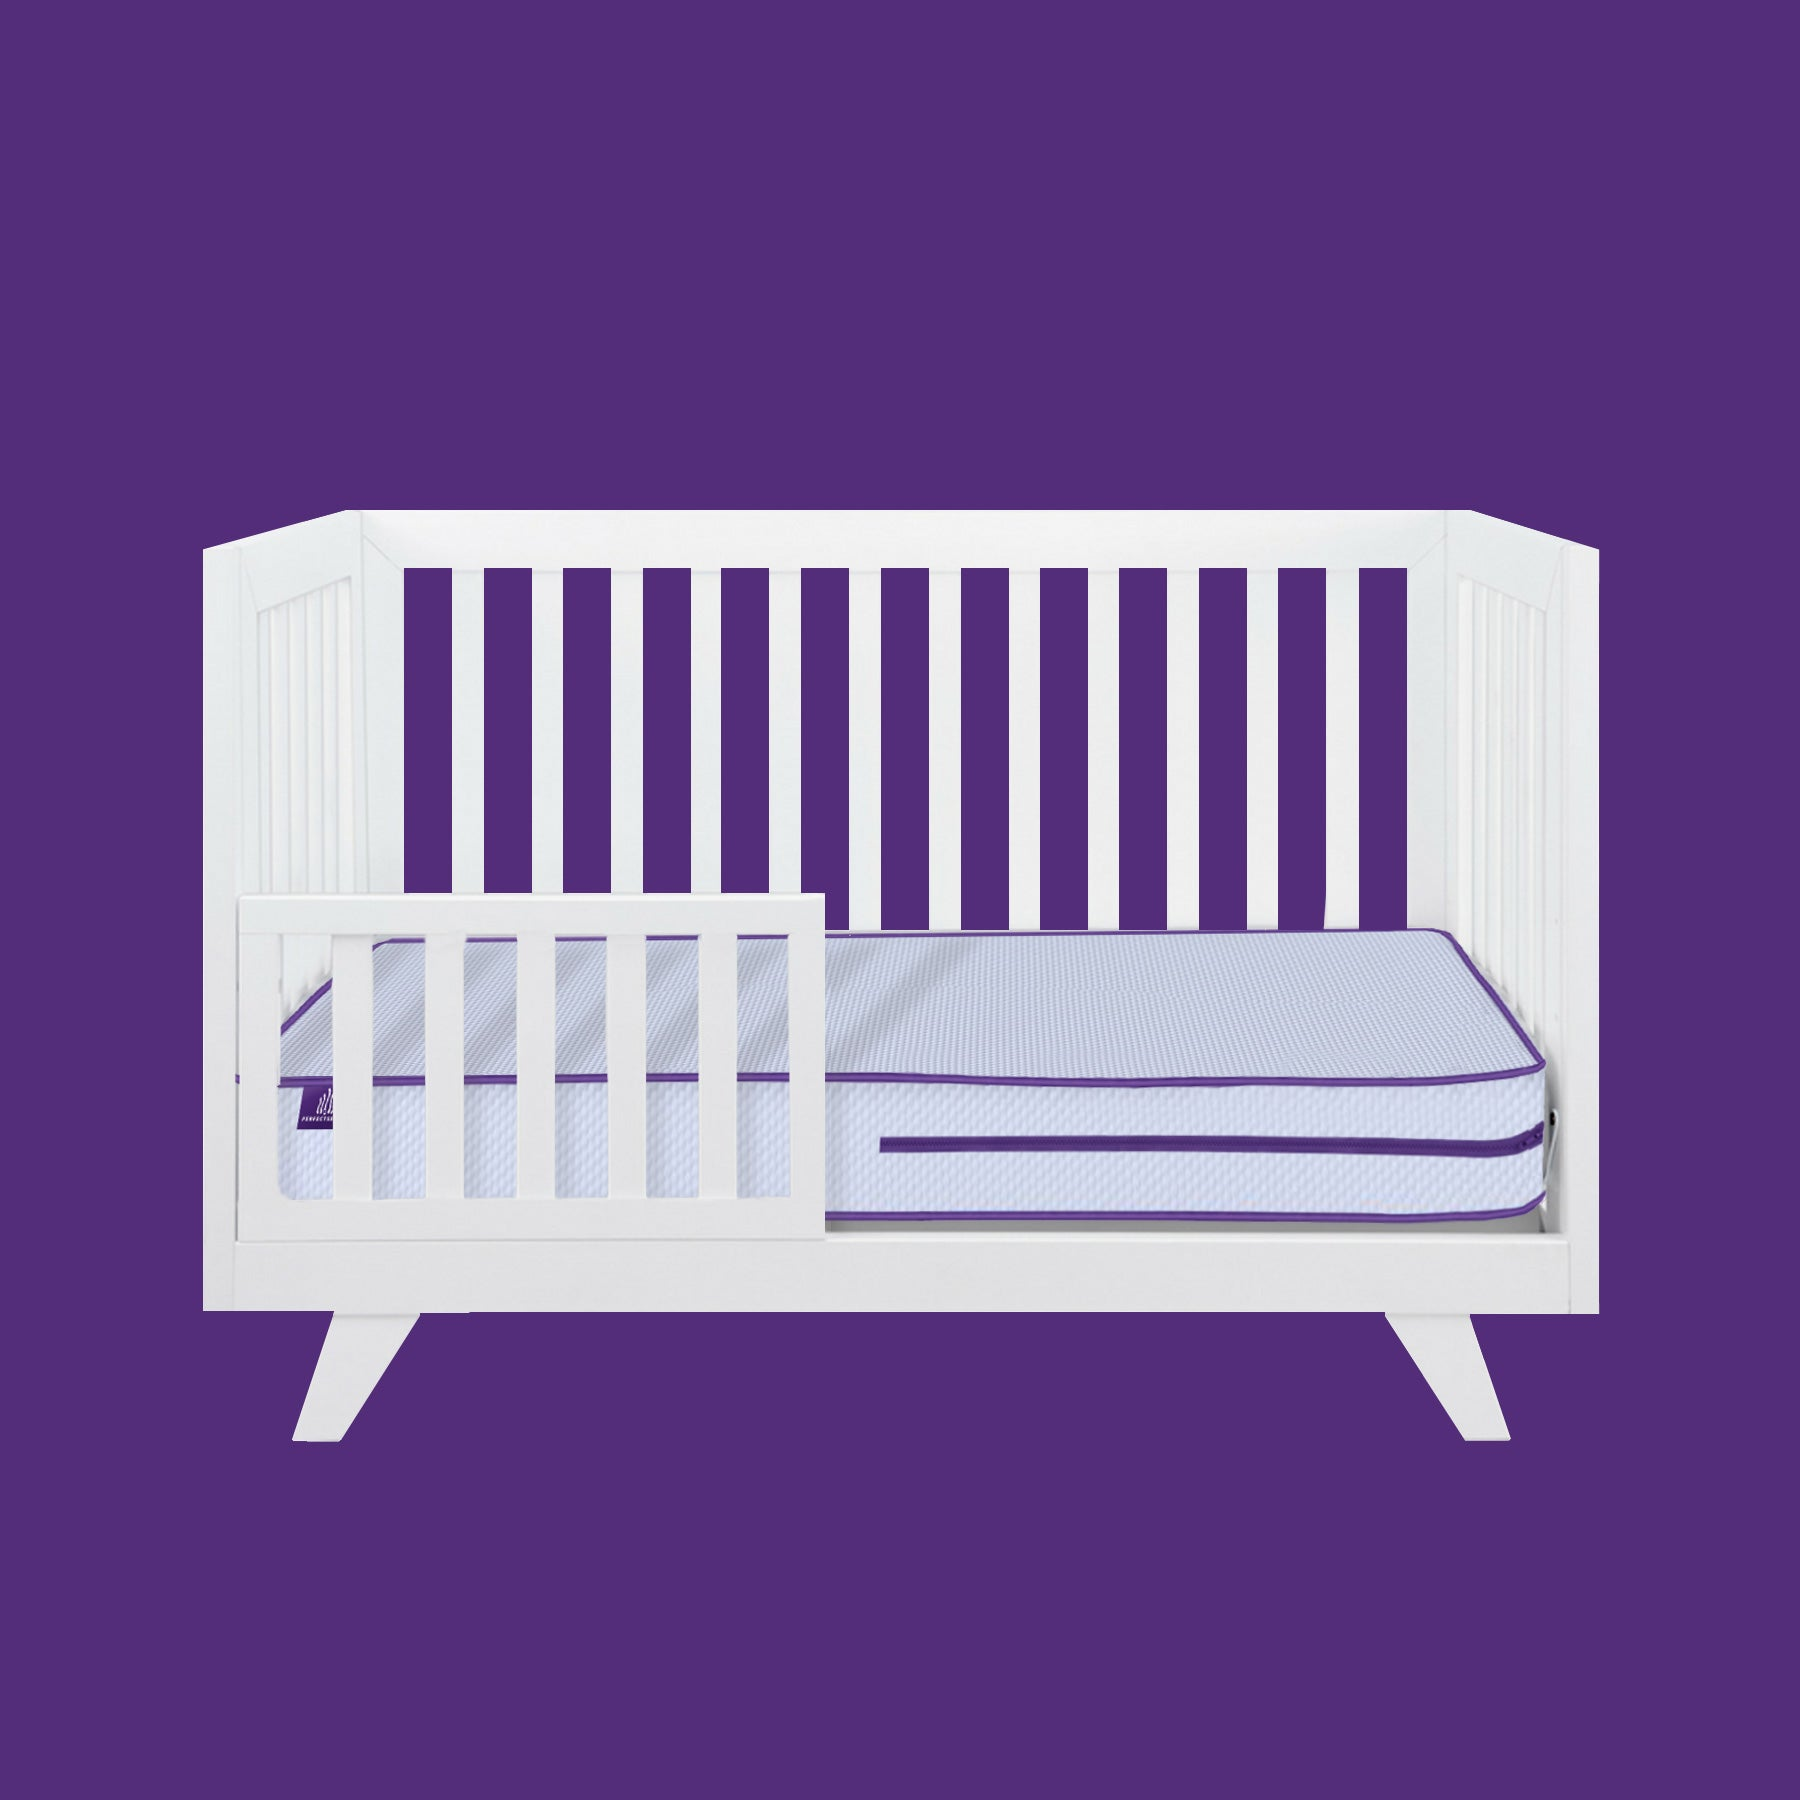 white baby crib bed and mattress against purple background